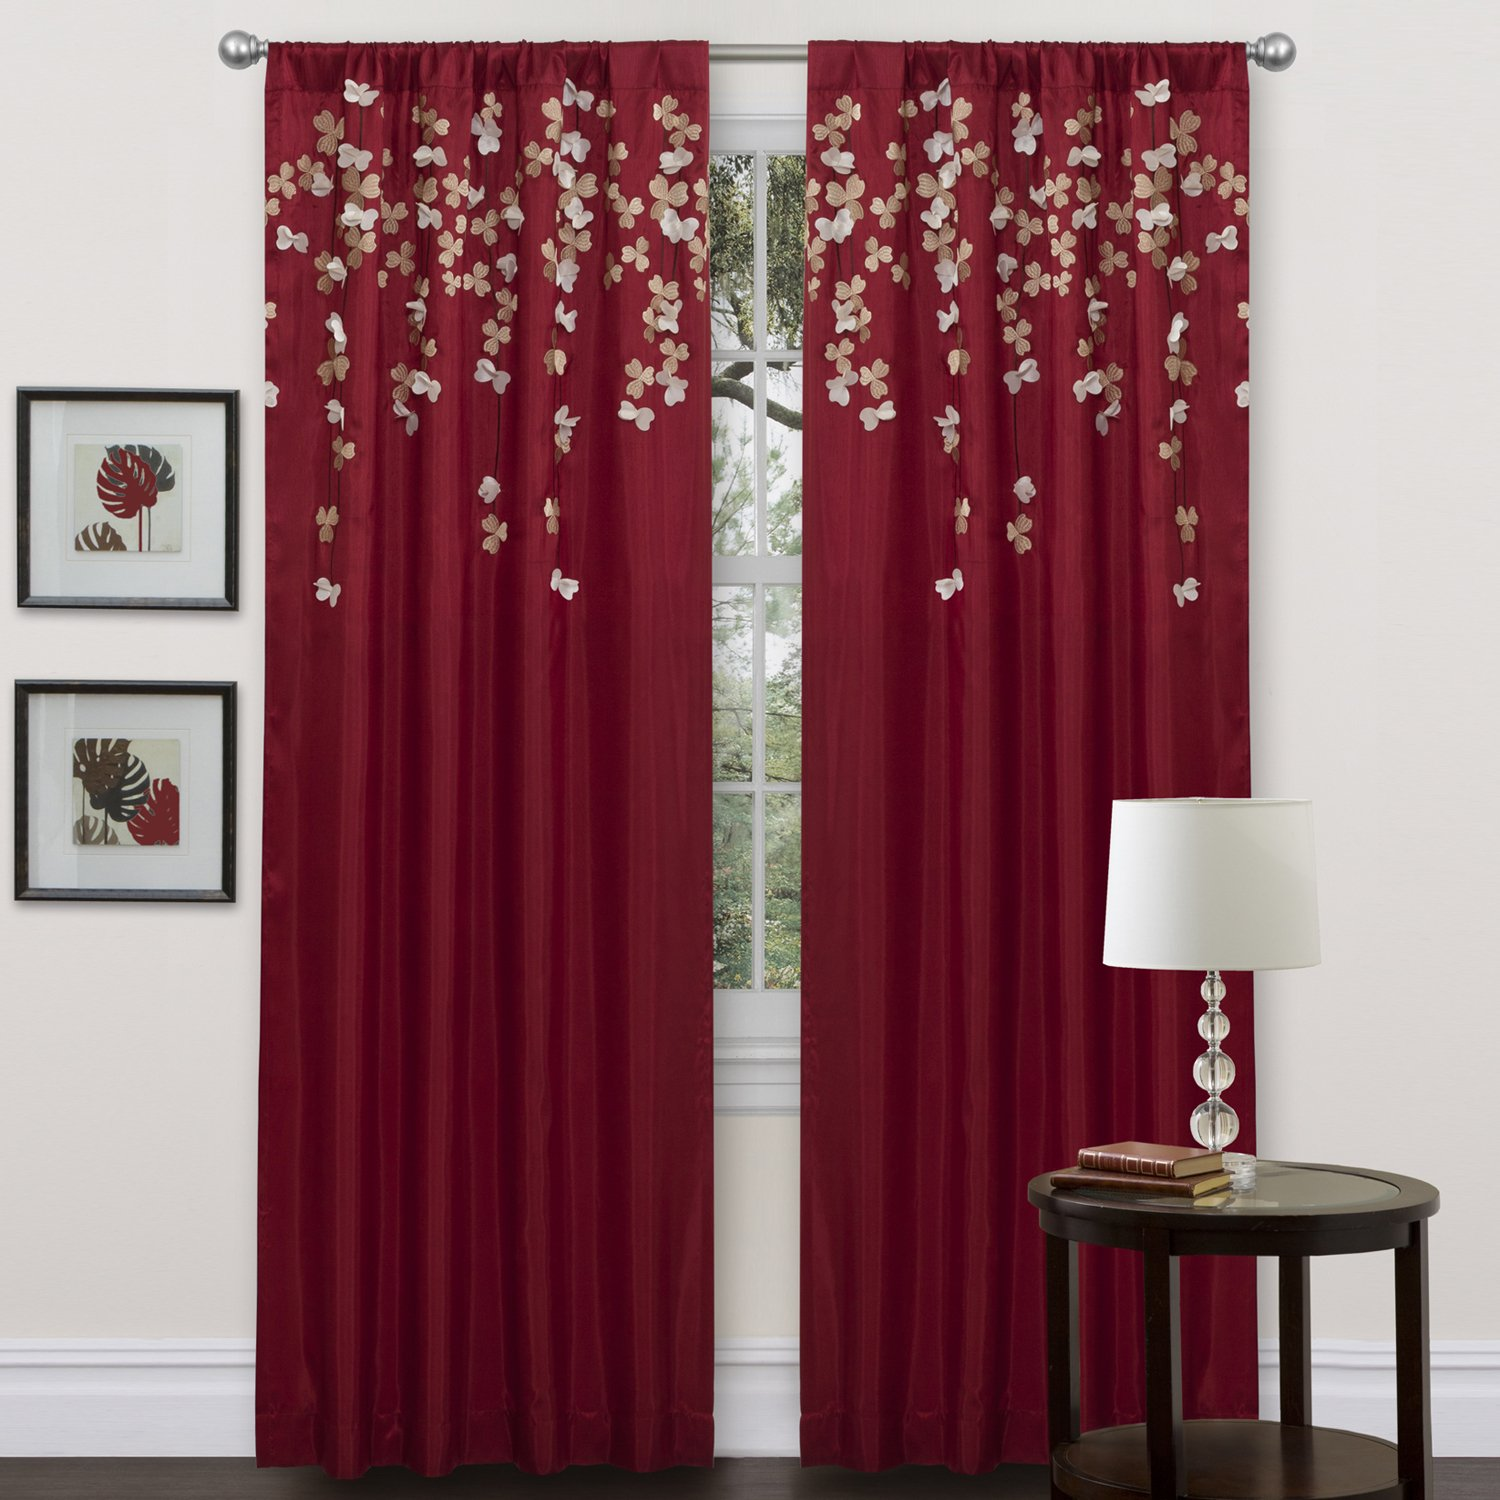 Red patterned curtains living room - Amazon Com Lush Decor Flower Drop 84 X 42 Inches Curtain Panel Red Home Kitchen